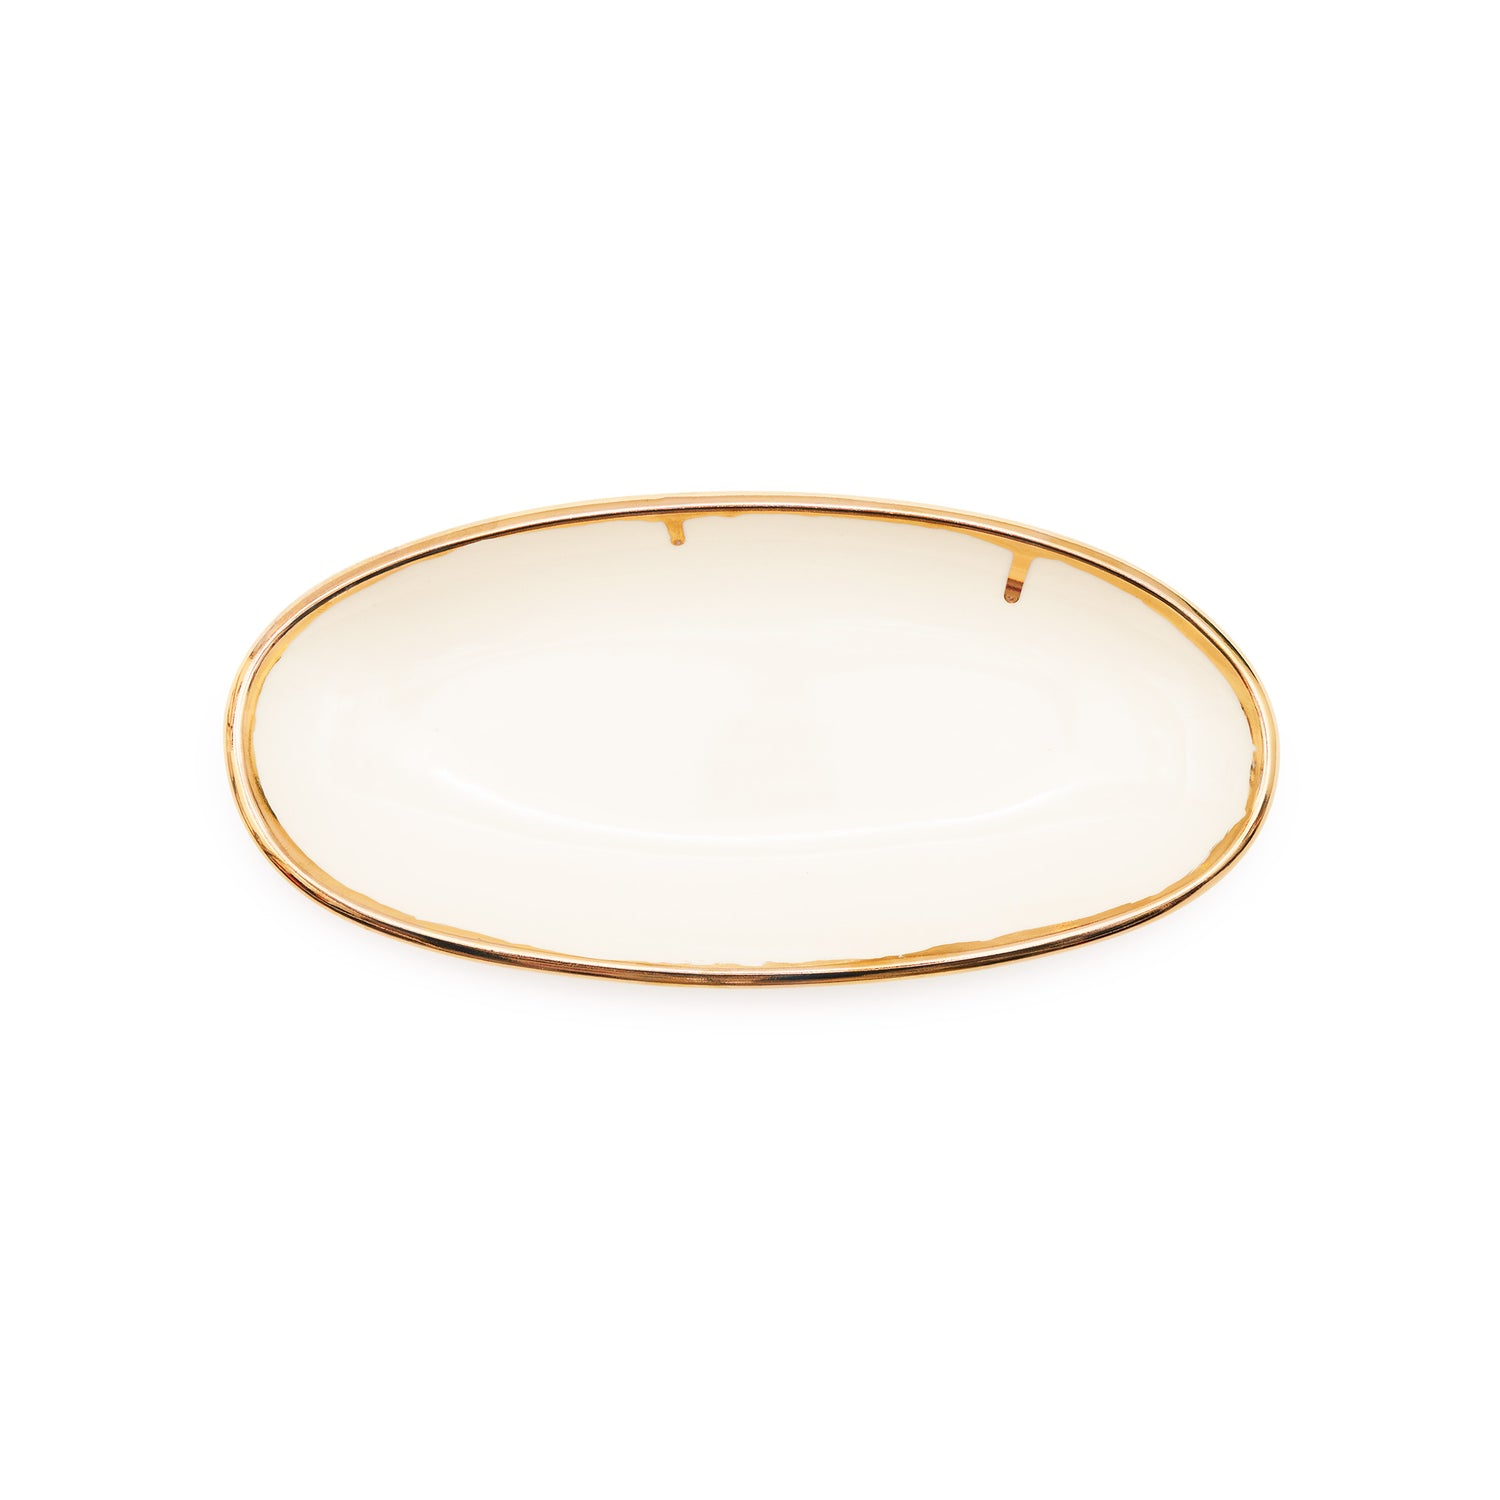 Oval Sides Bowl - White/Gold Rim